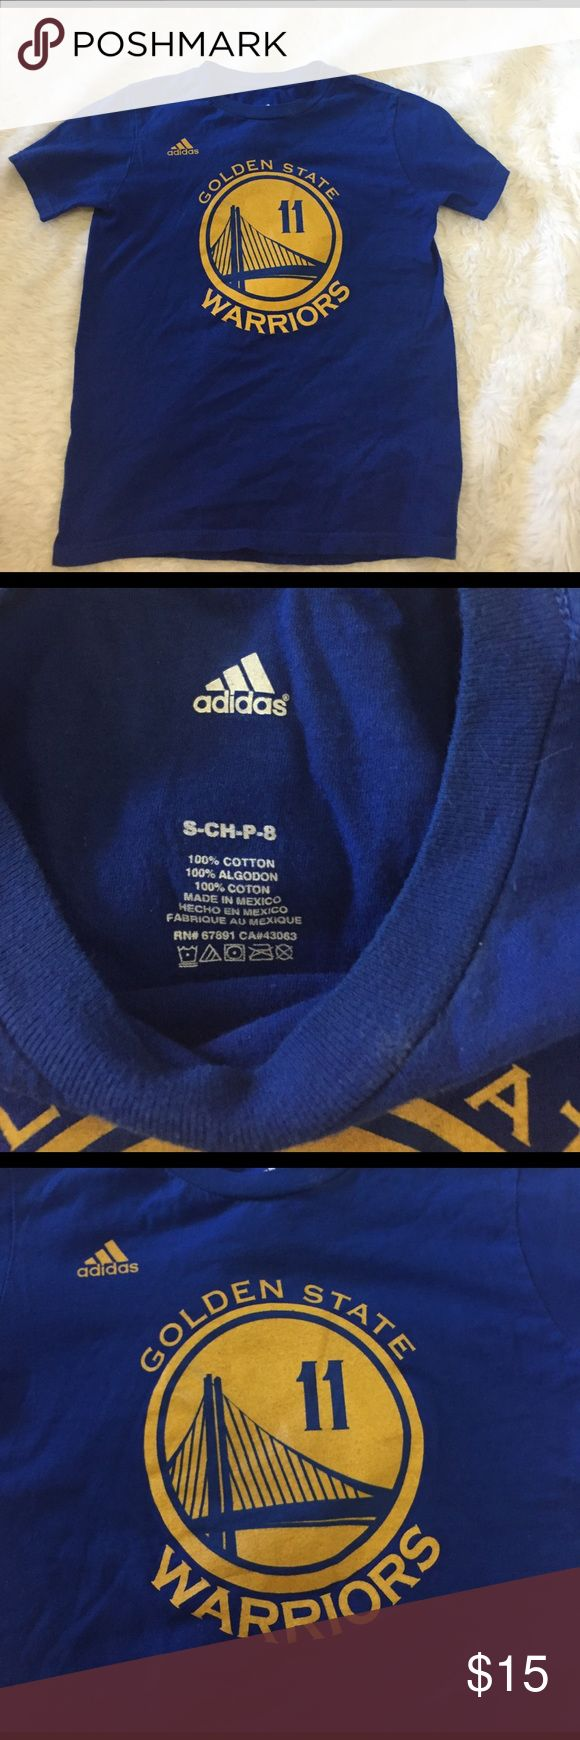 Golden state warriors t shirt adidas Adidas Golden state  warriors t shirt. No flaws. Fits more like an xs nicely fitted Adidas Tops Tees - Short Sleeve